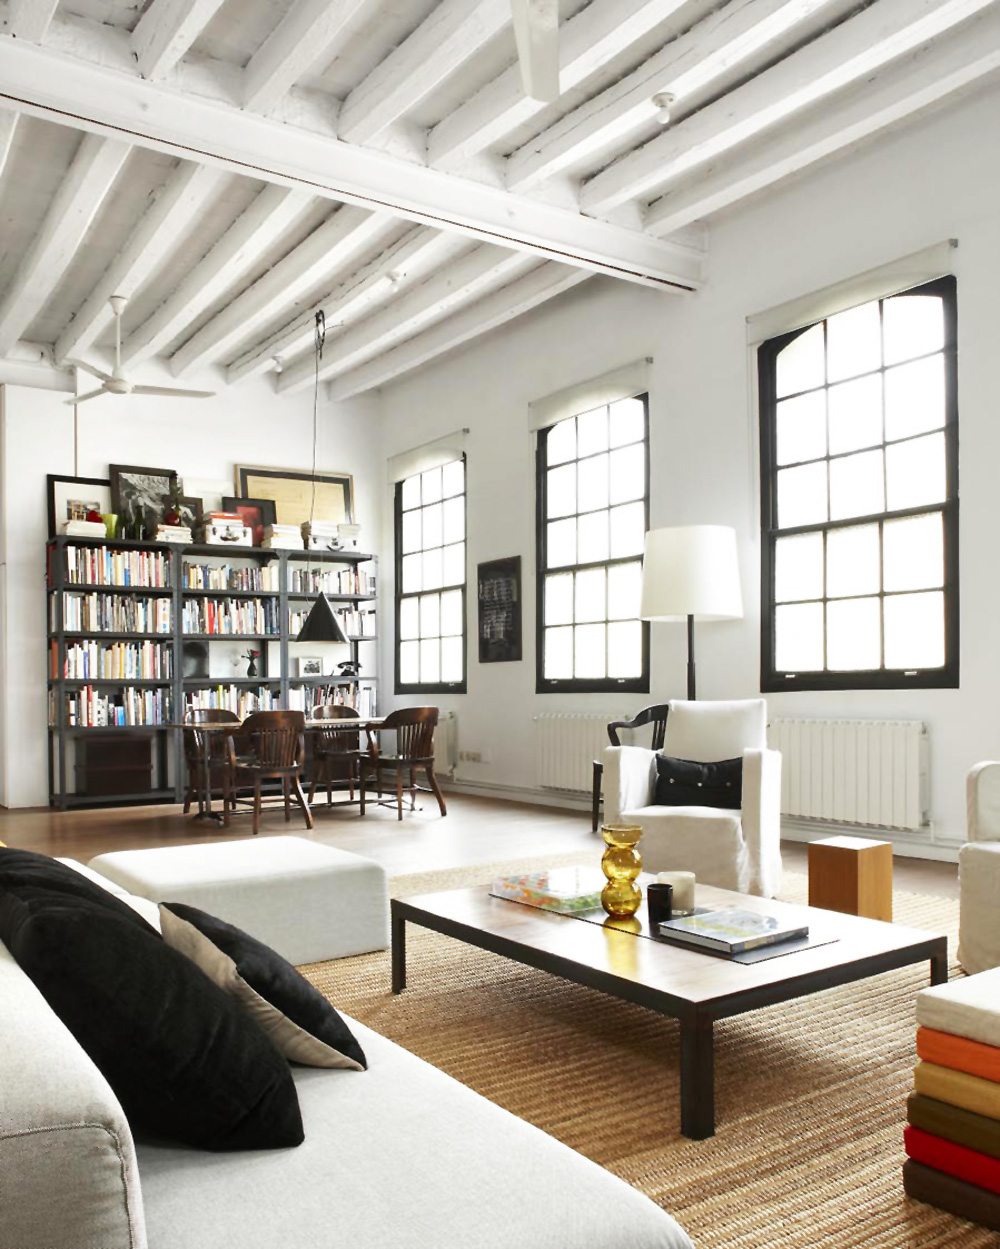 New York, Loft, Interior, Inspiration, Sunday Sanctuary, Oracle Fox